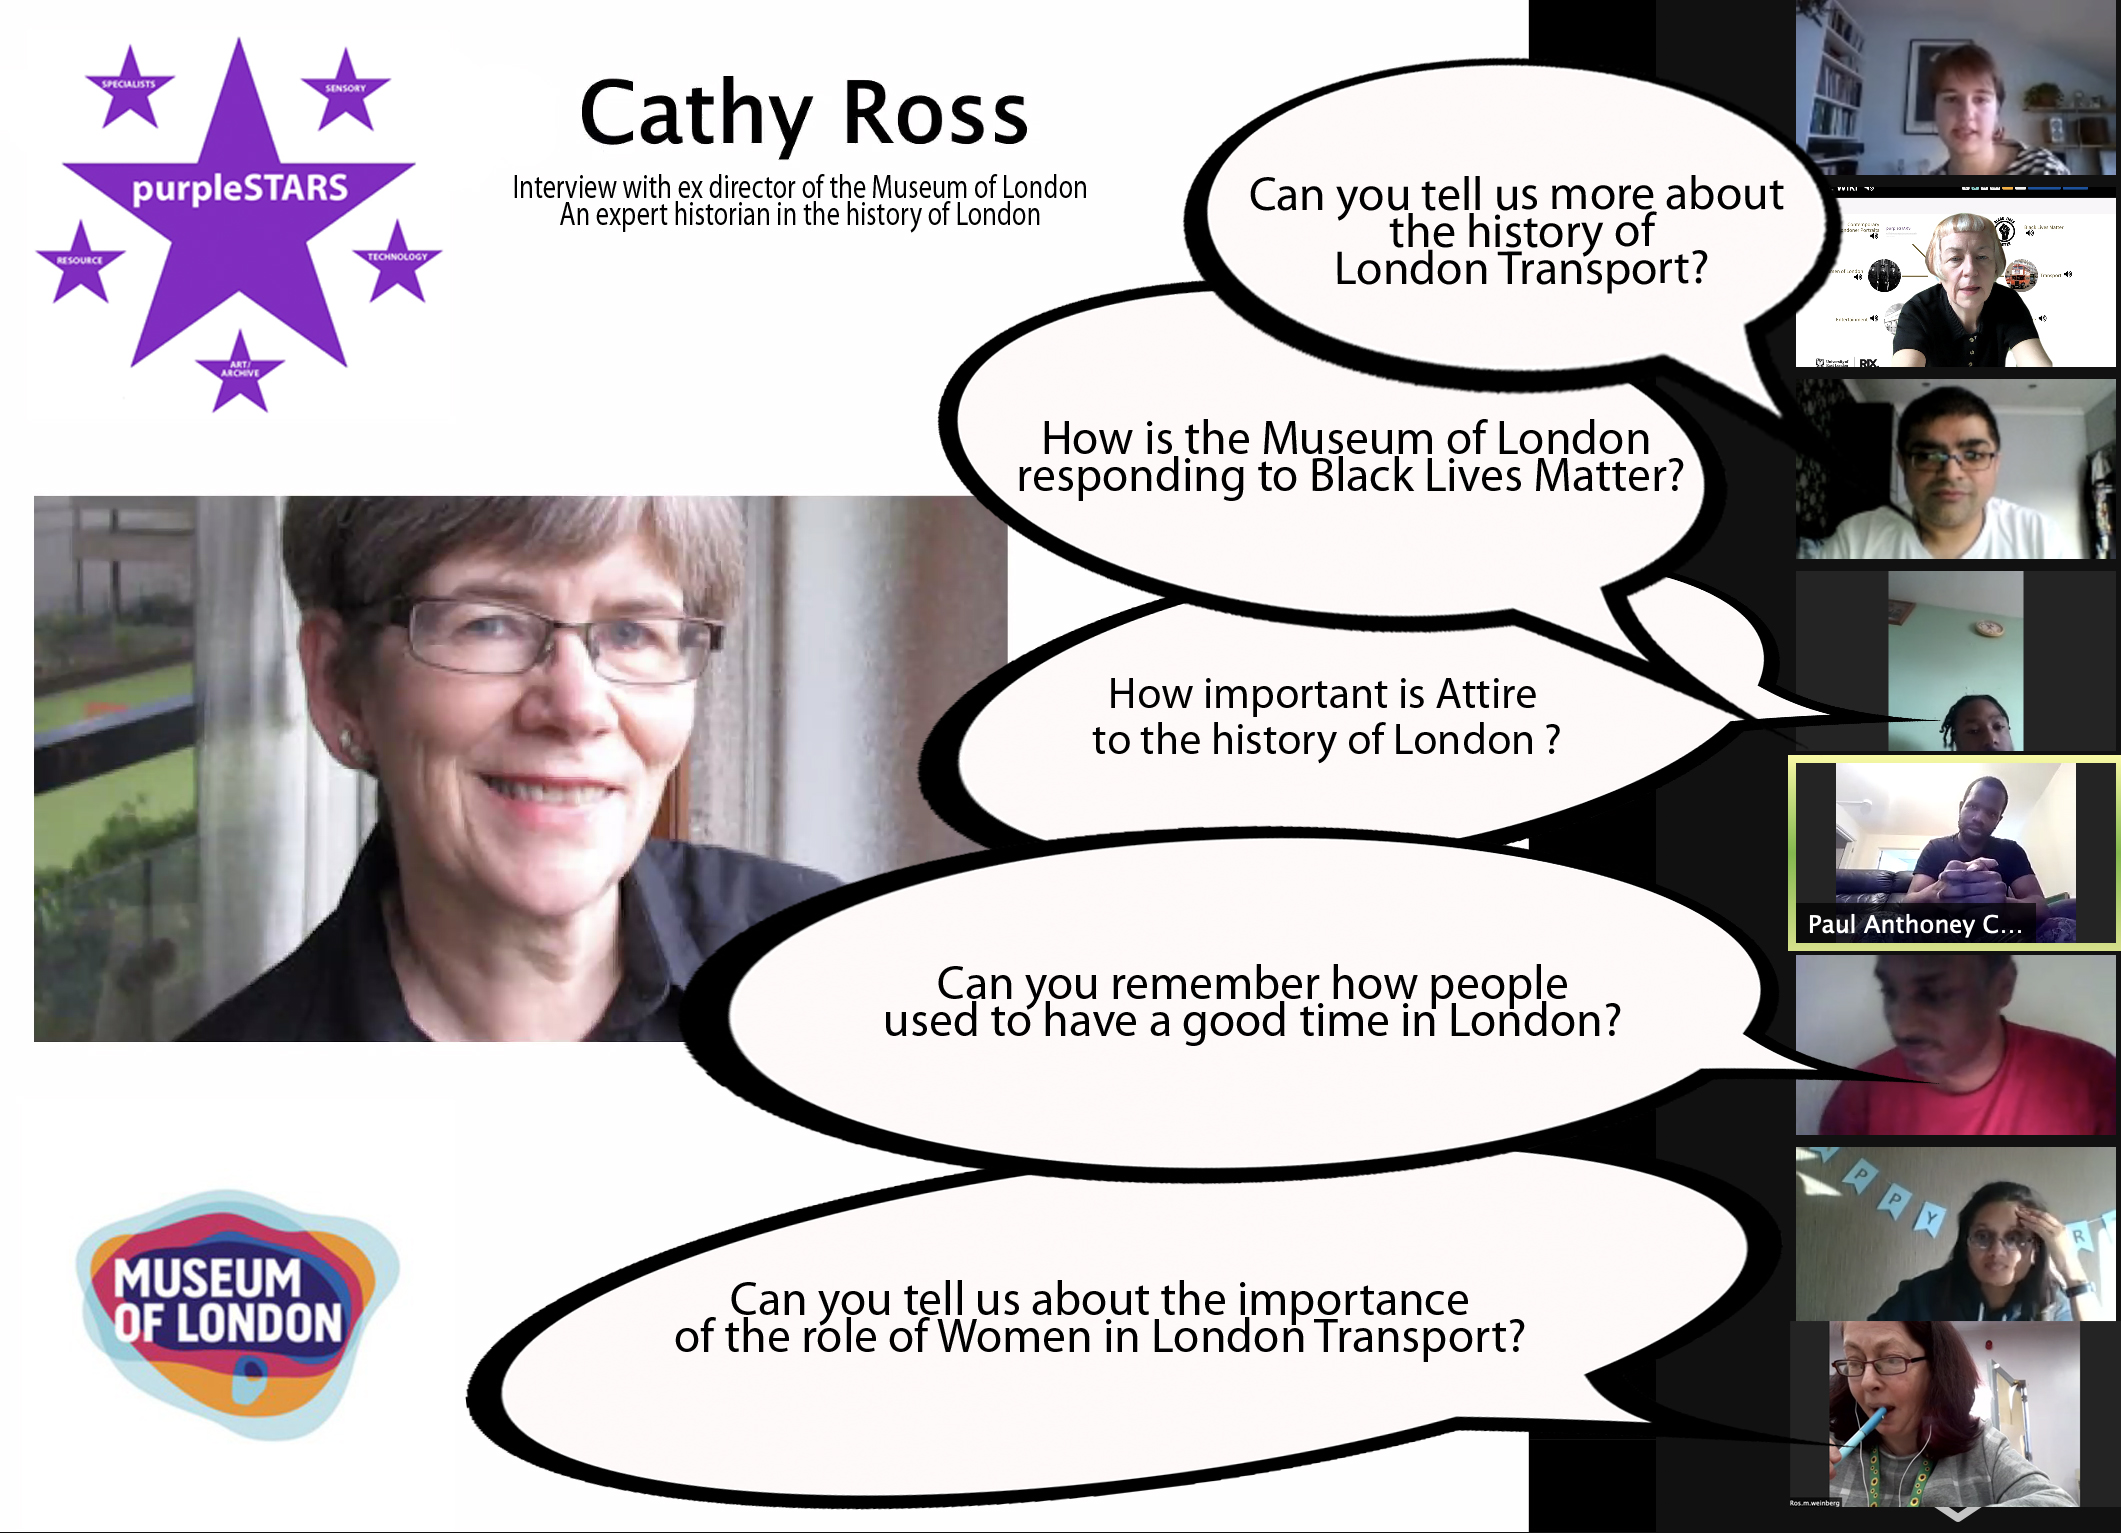 Image of interview with Cathy Ross and speech bubbles with questions